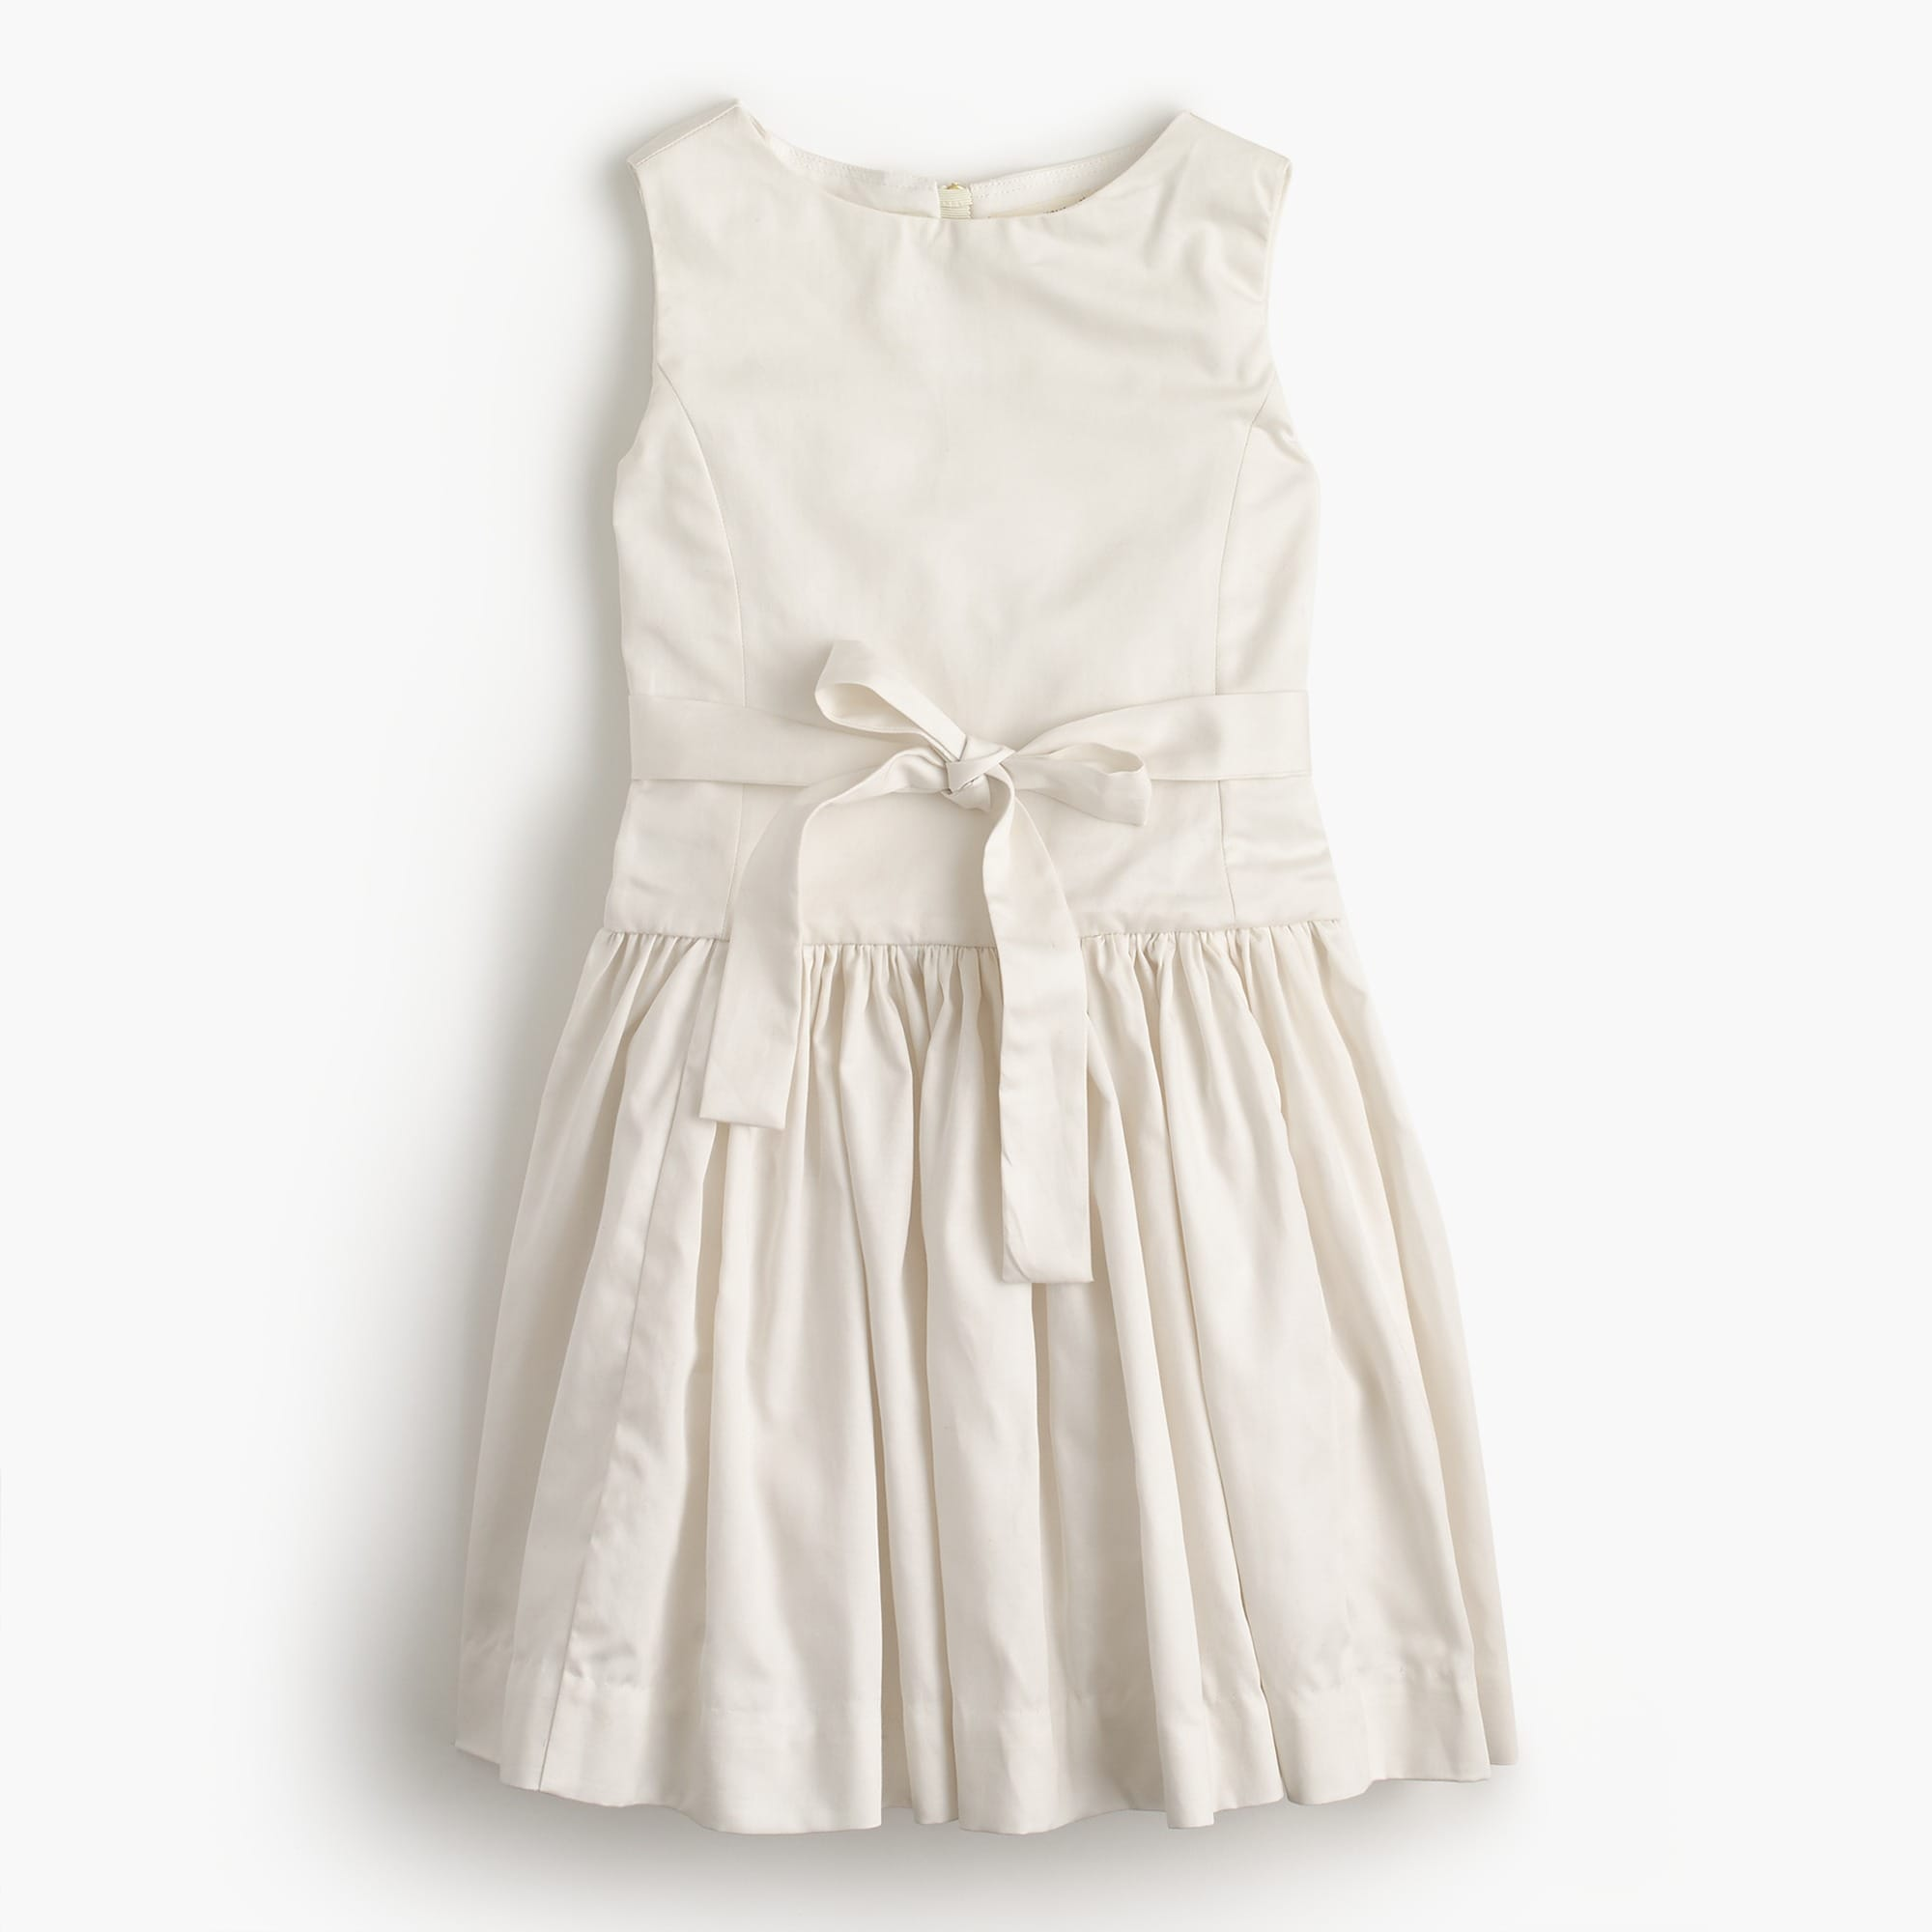 Girls' tie-waist dress girl new arrivals c